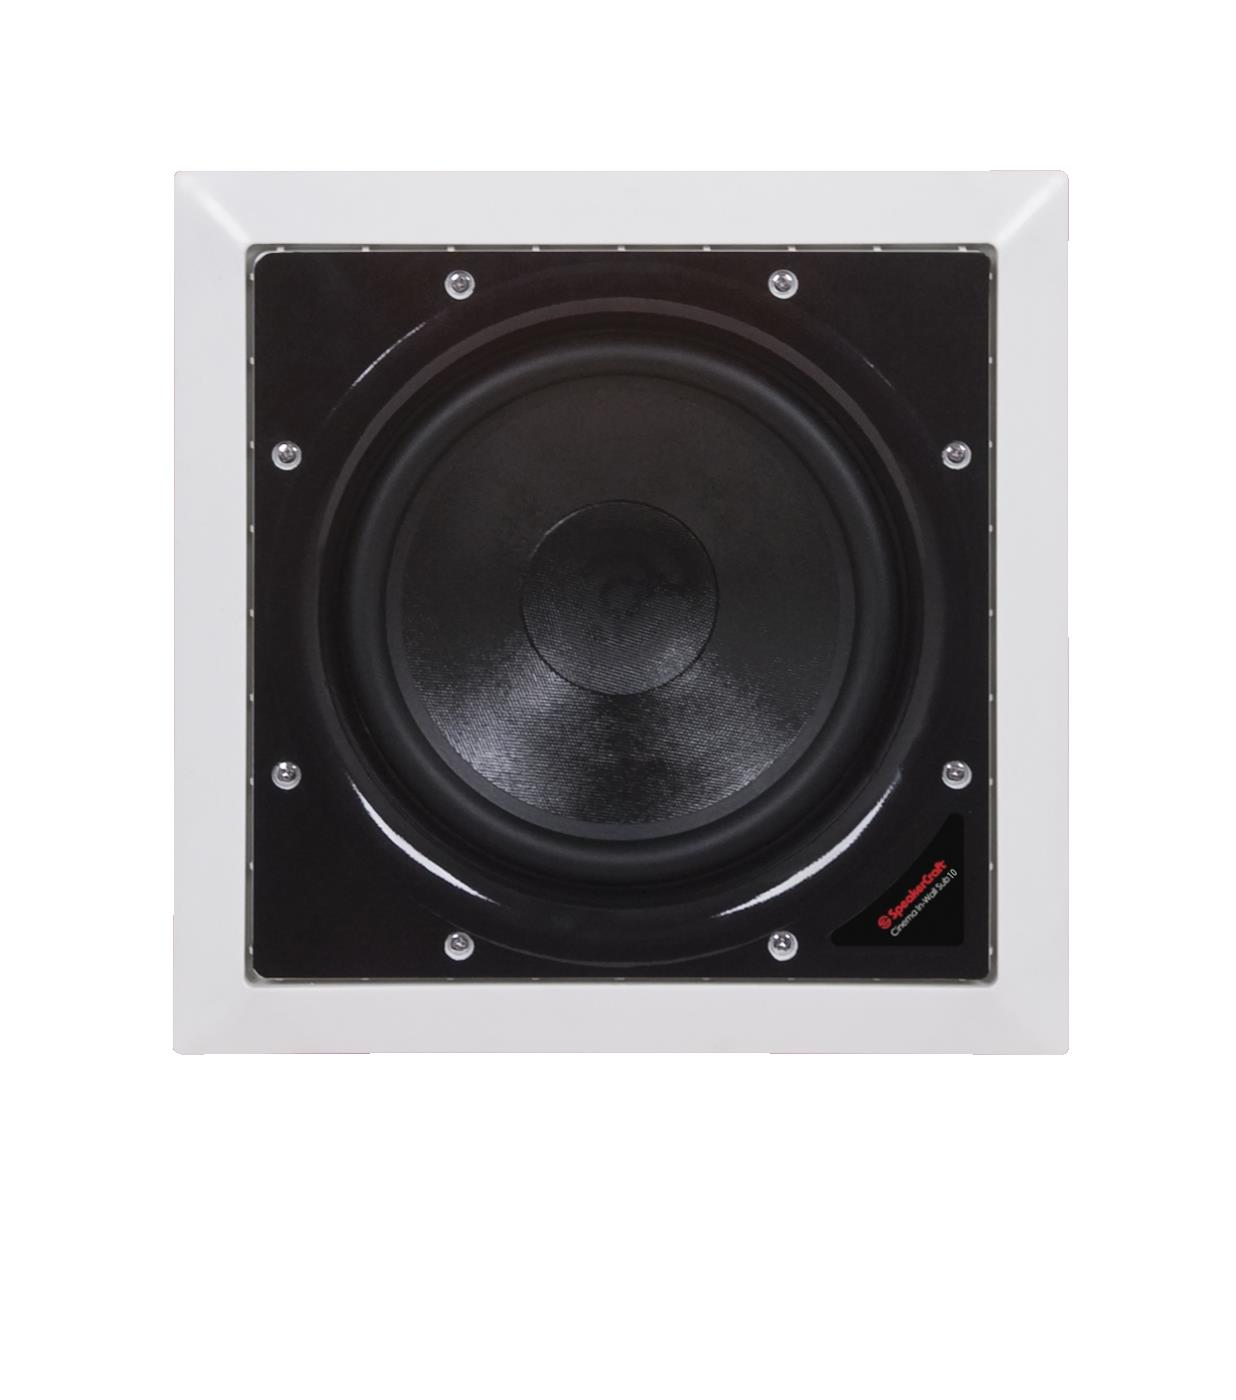 "6167101 Core Brands  Speakercraft PROFILE CINEMA SUB 10 Kvadratisk subwoofer 10"" PROFILE"